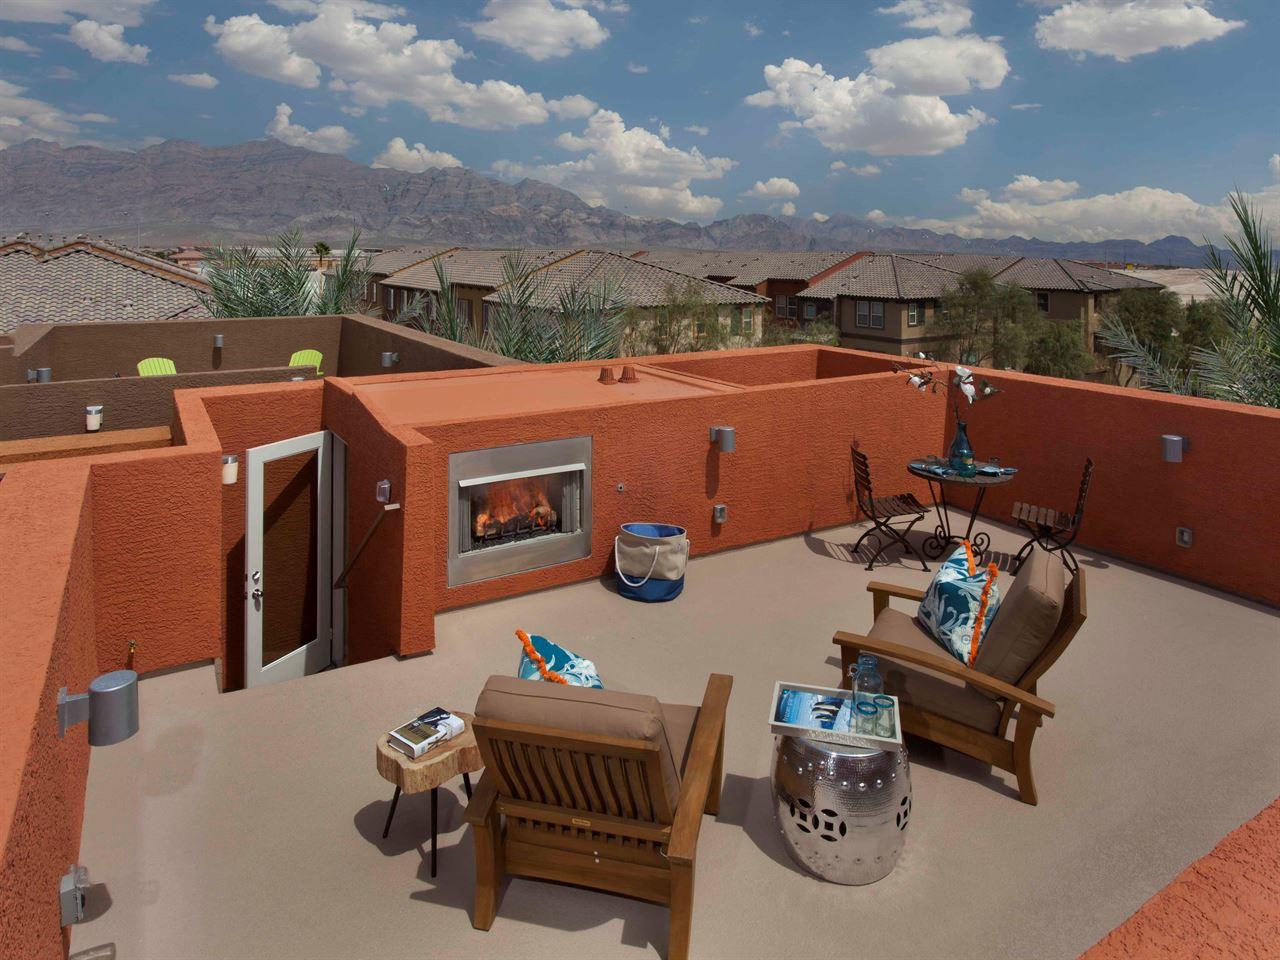 Rooftop deck homes las vegas homemade ftempo for Home landscape design architectural series v18